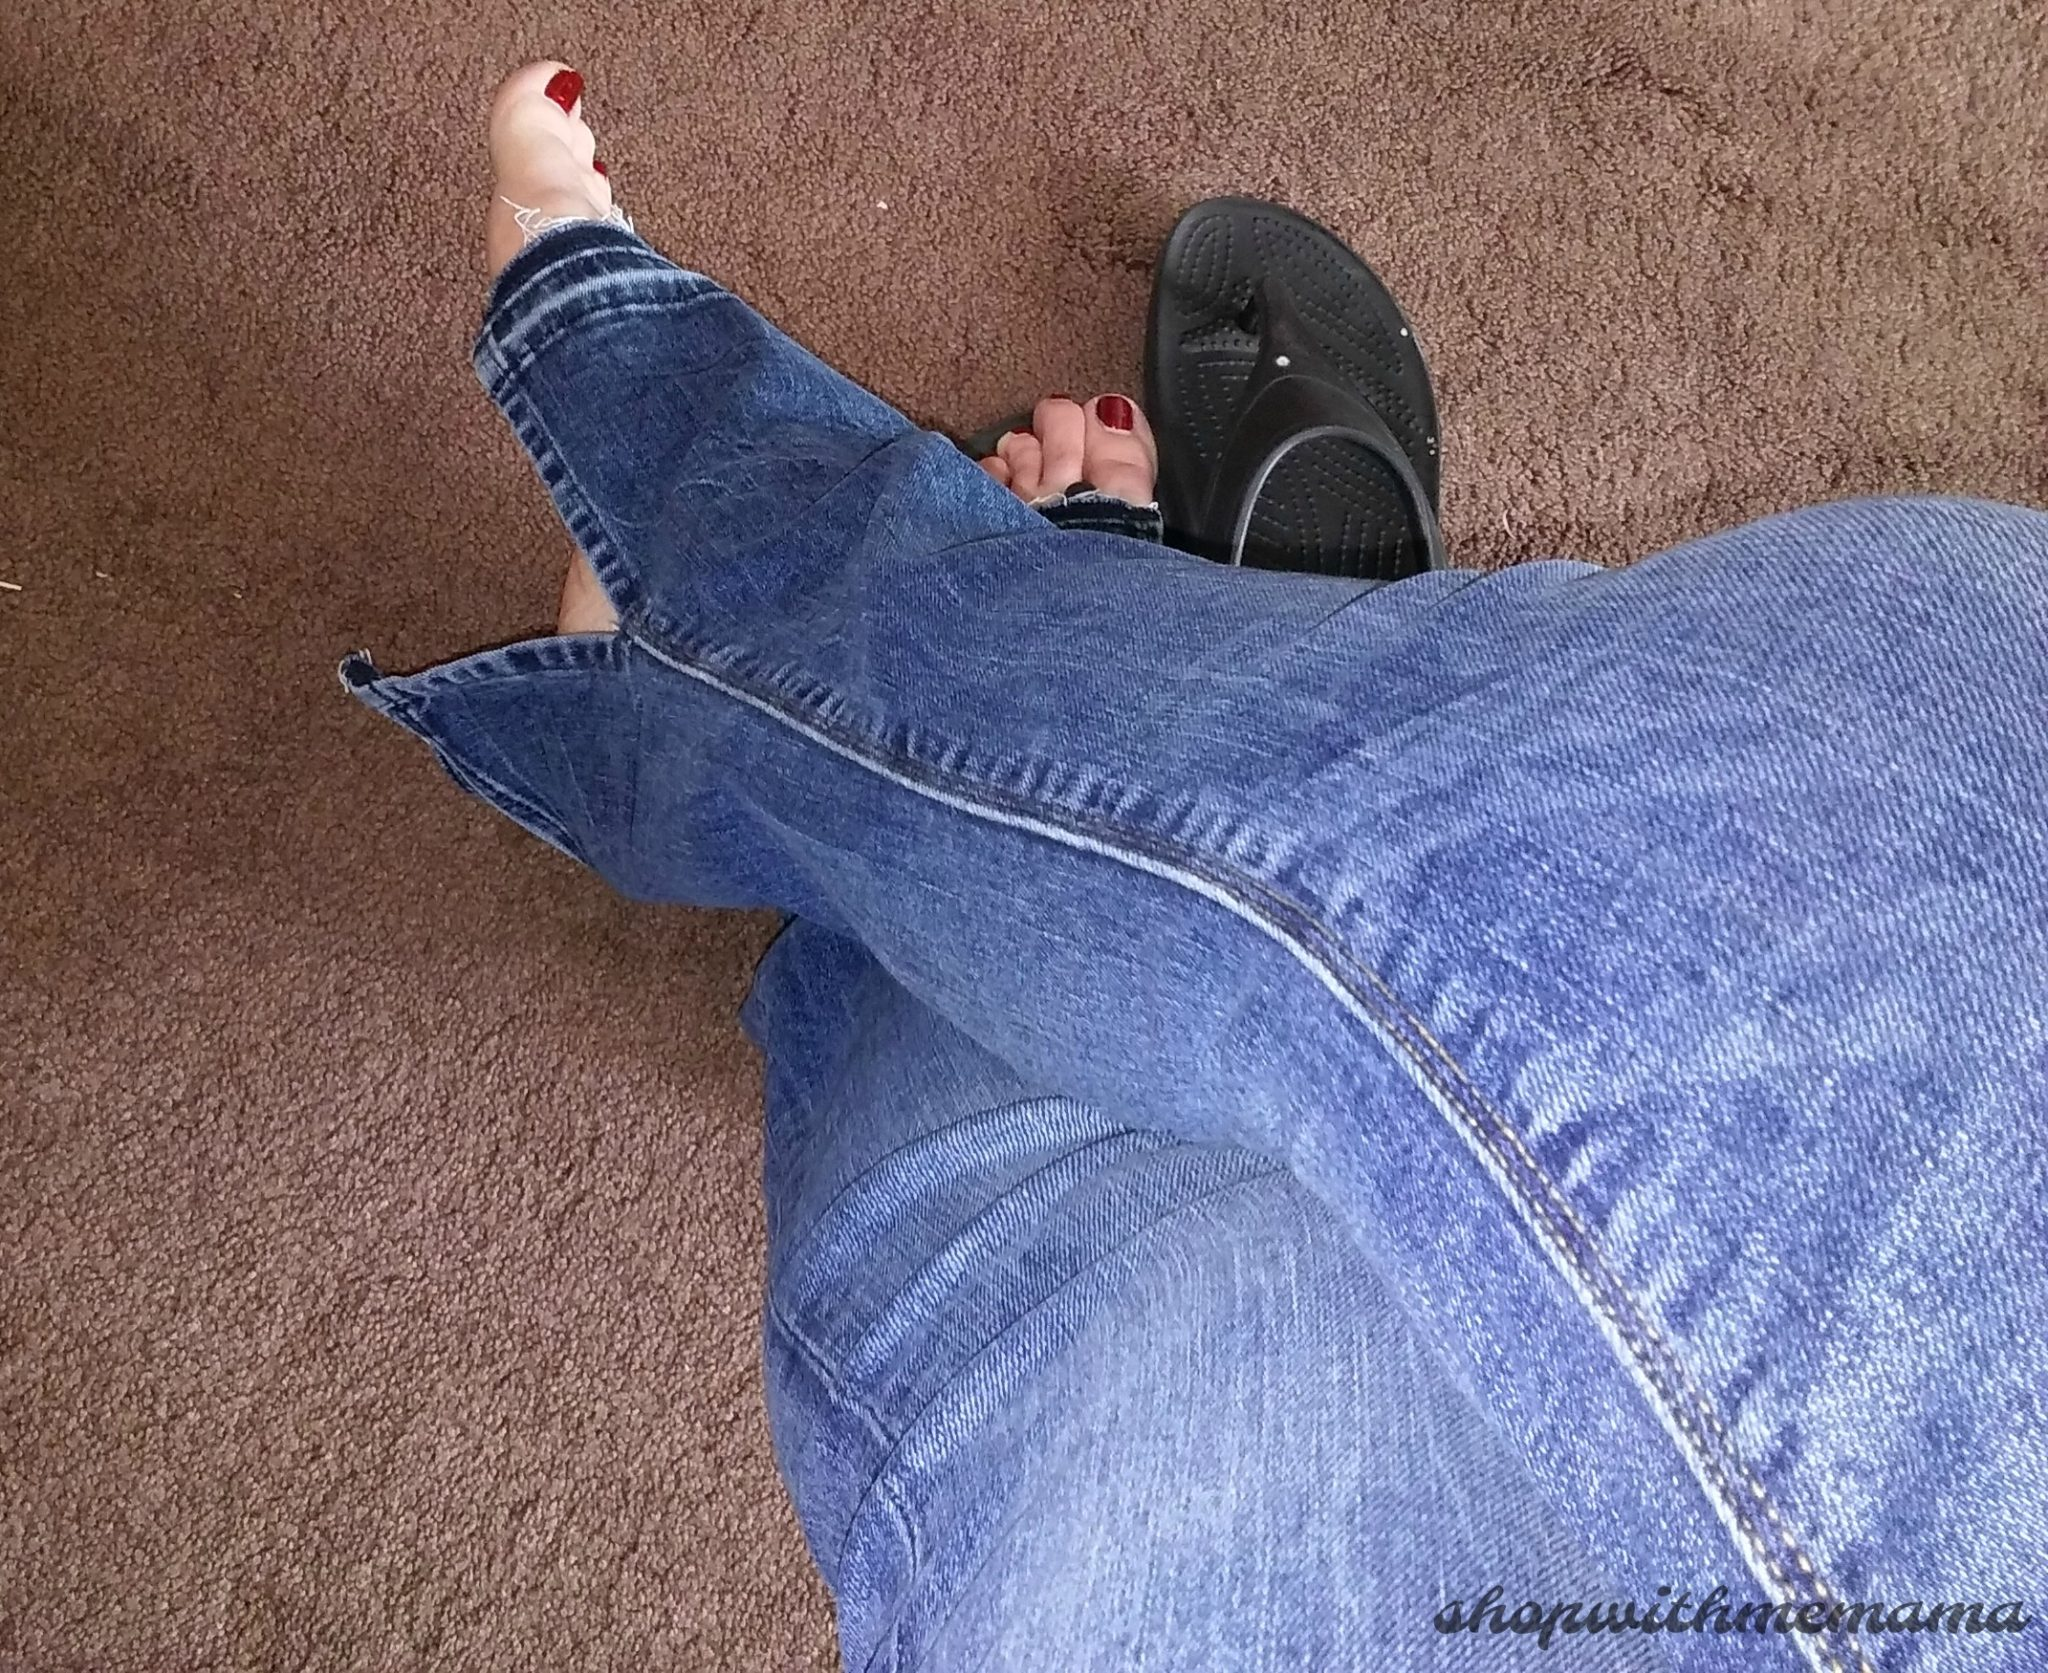 Check Out These Hot Jeans From Hudson Jeans!